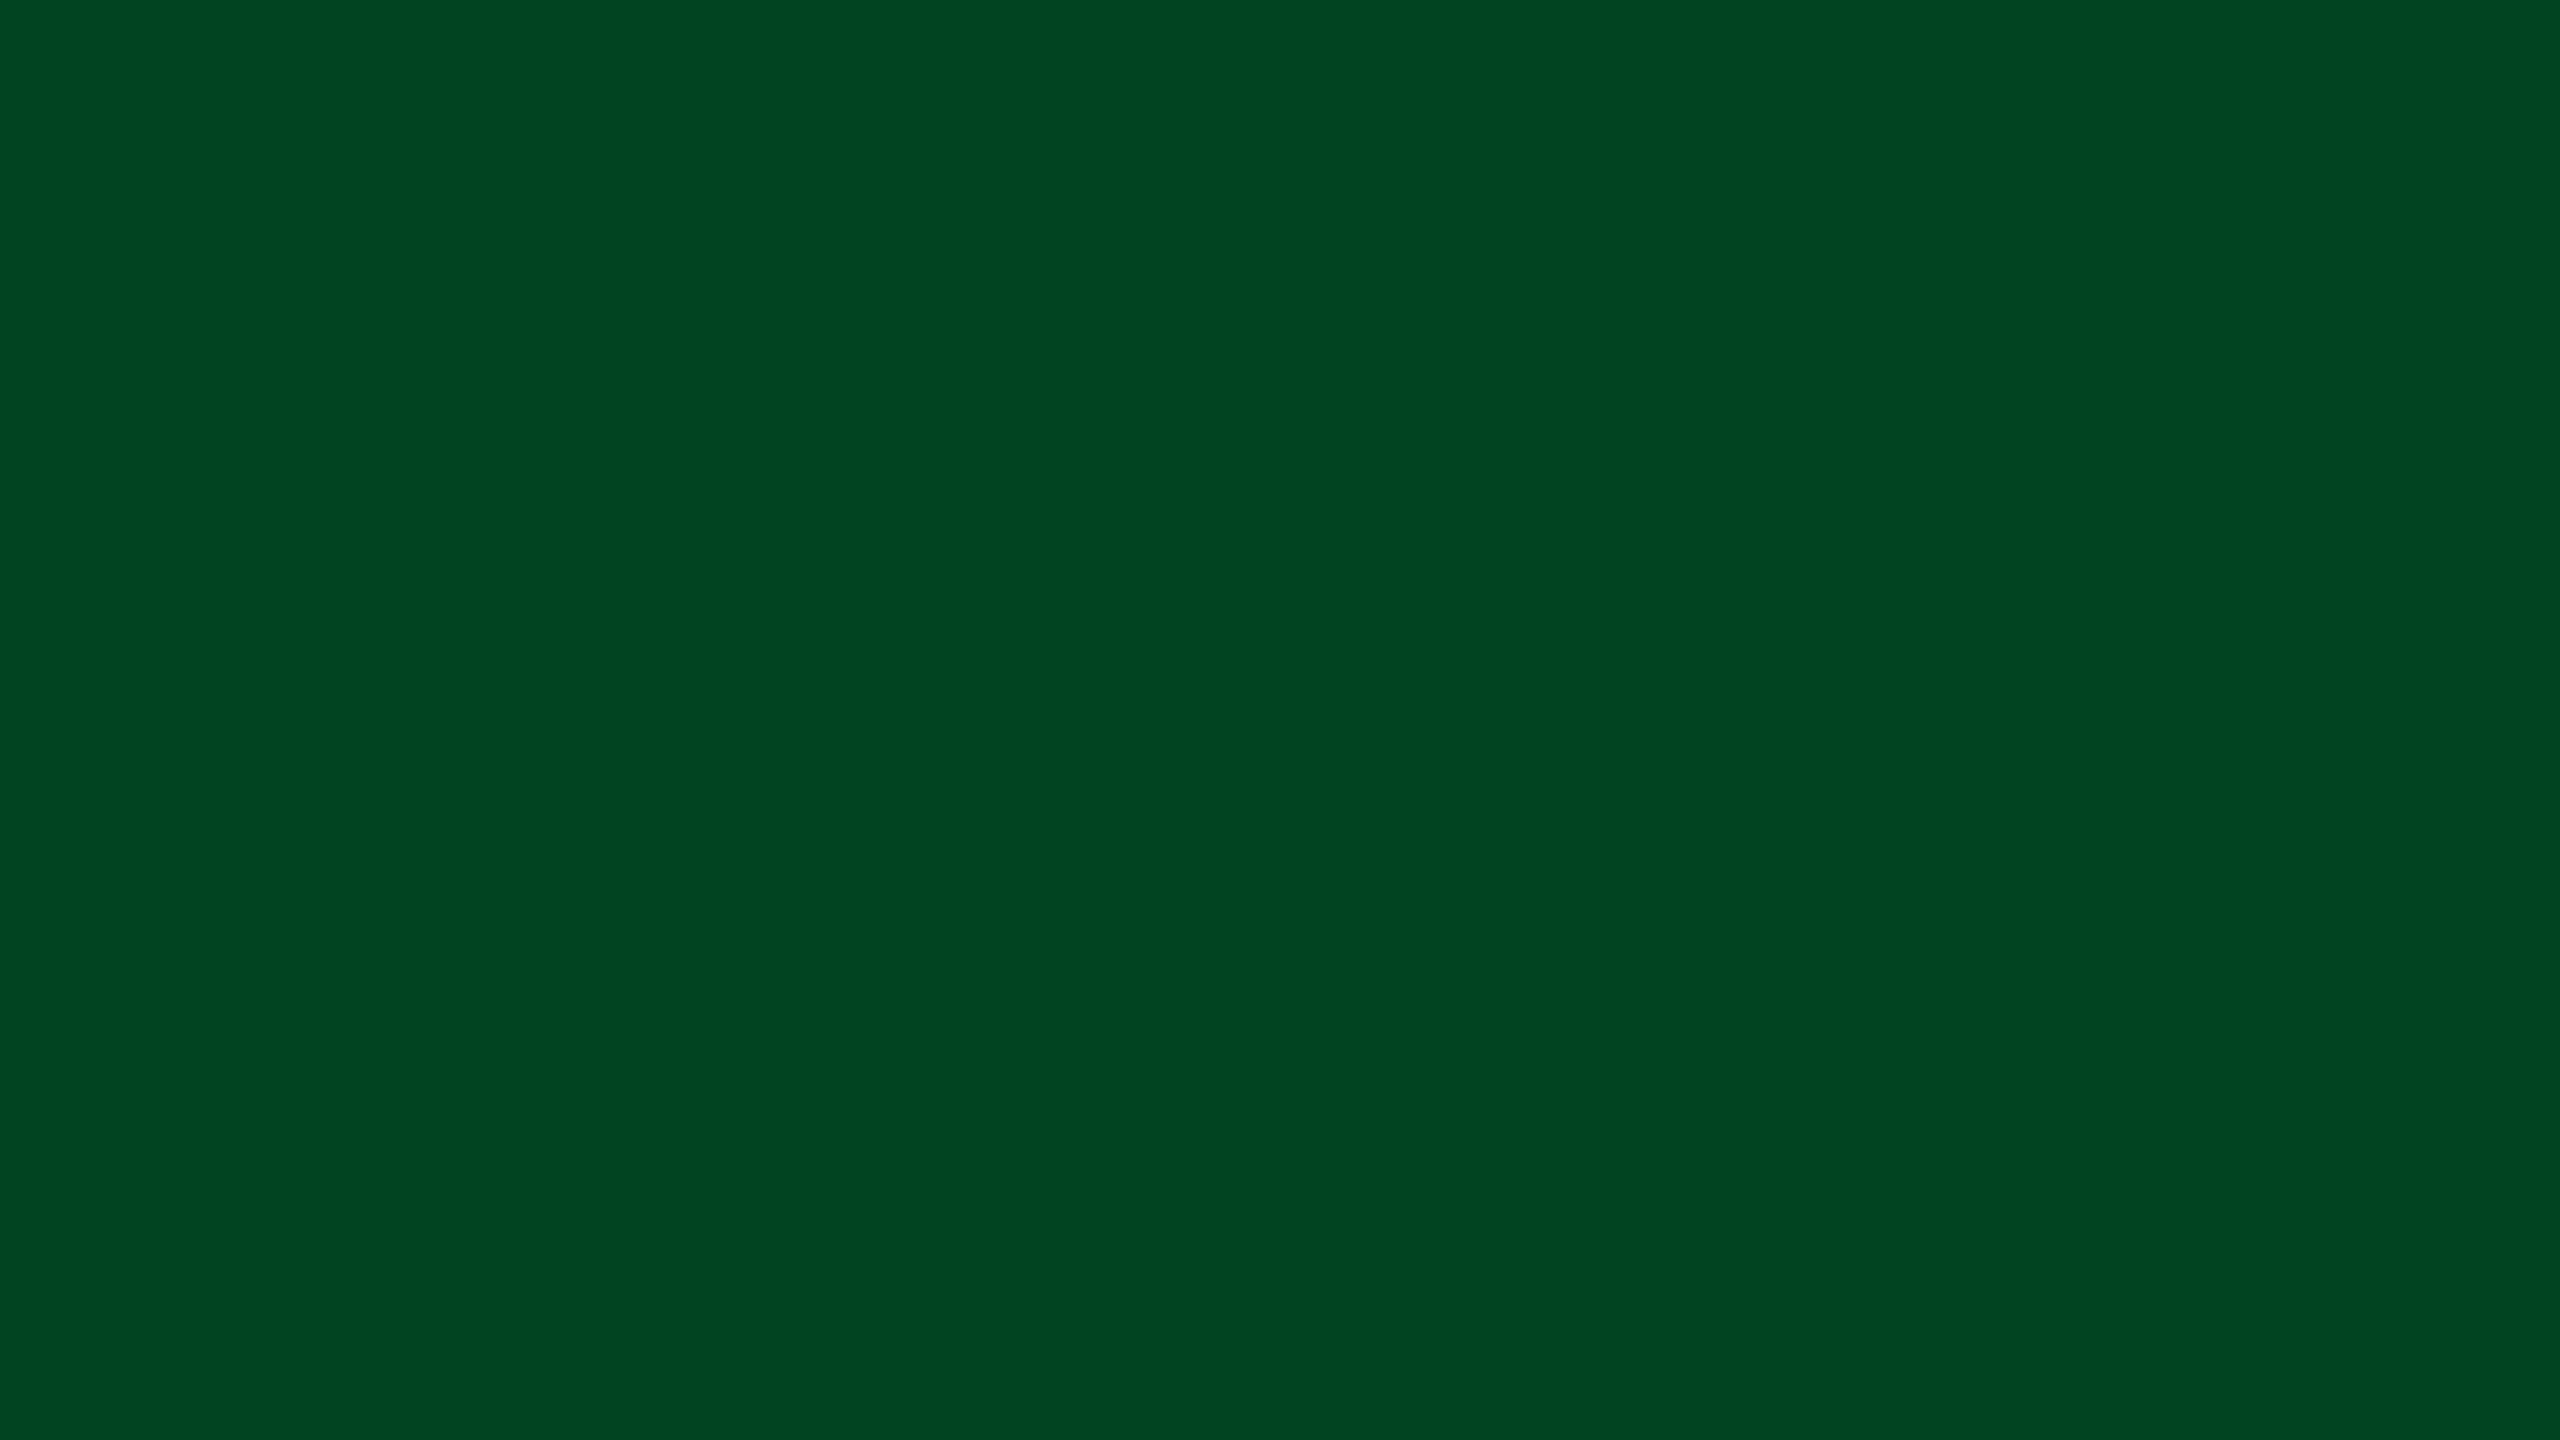 Privacy Policy >> 2560x1440 UP Forest Green Solid Color Background